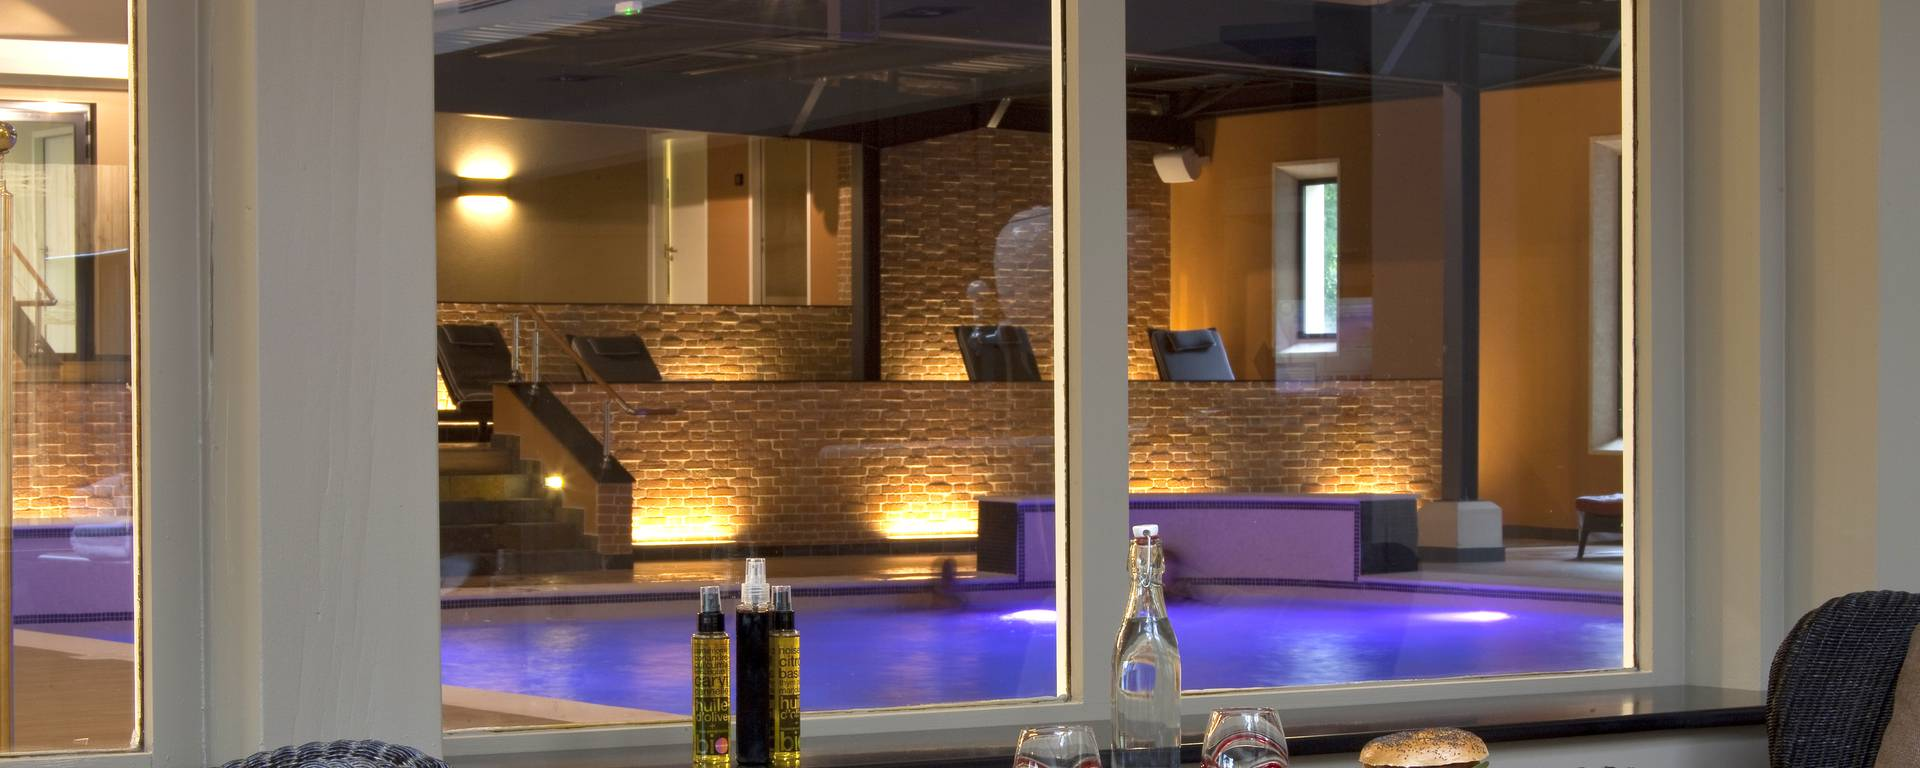 wellness spa source La Roche-Posay